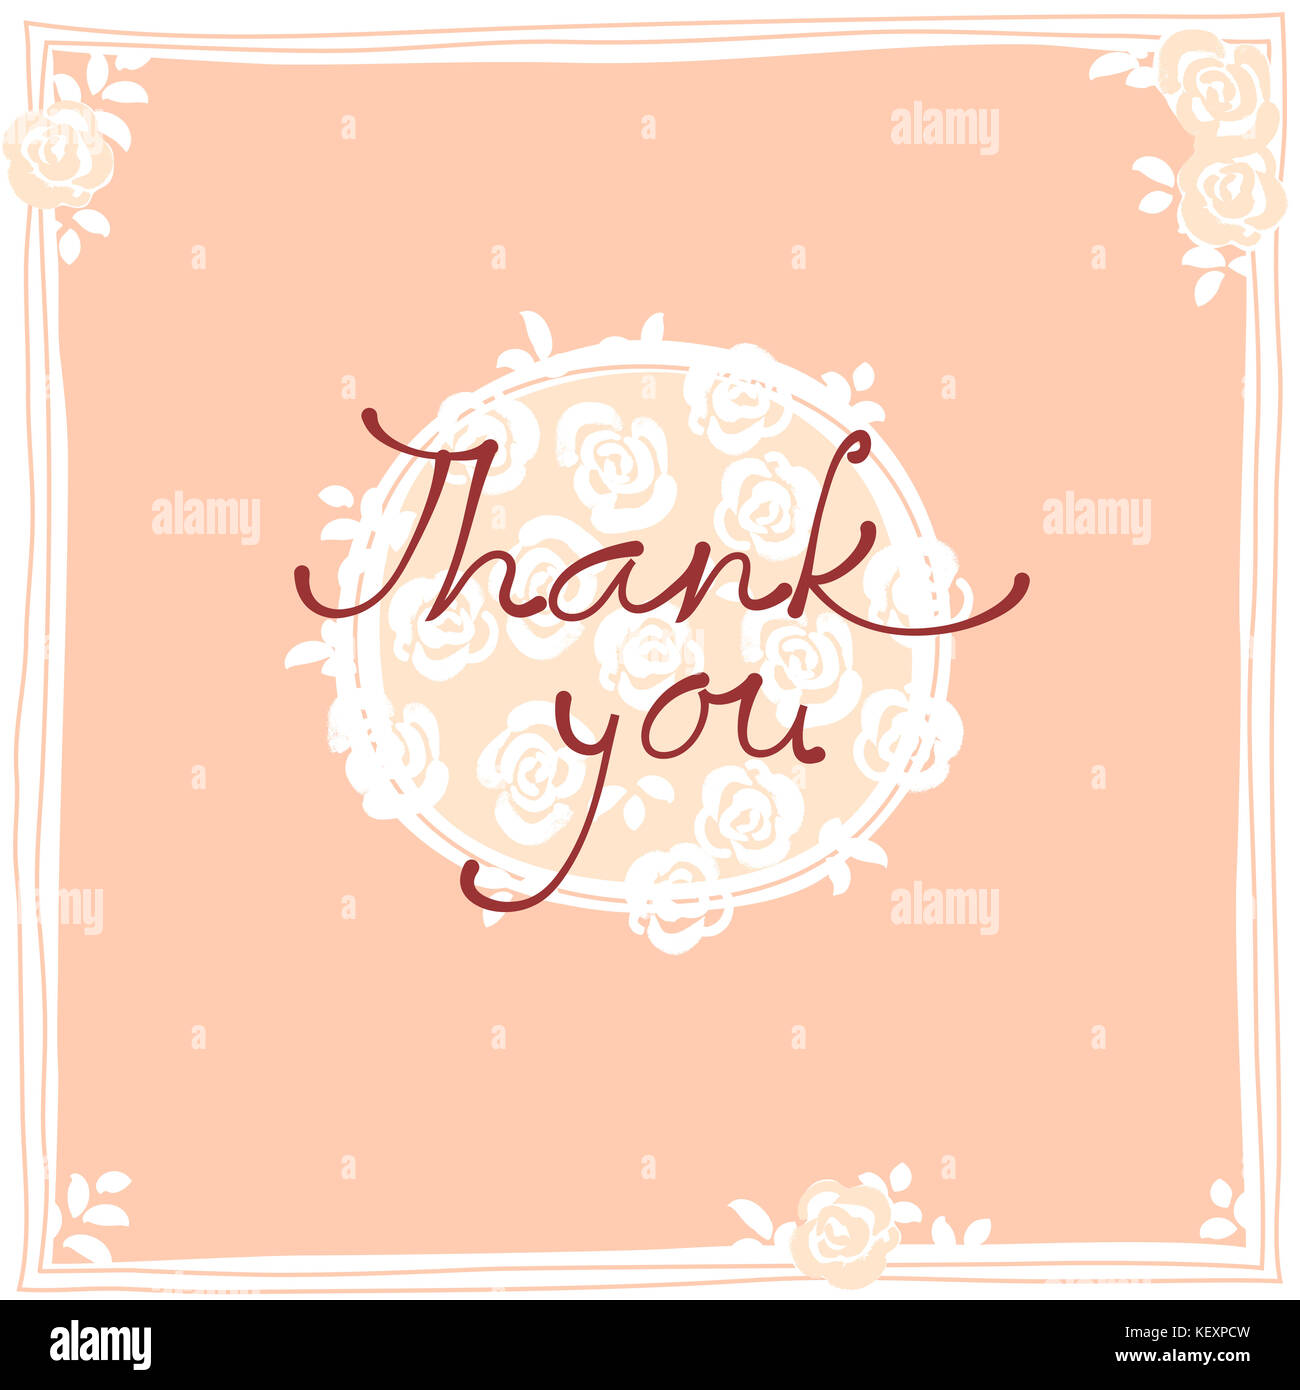 Thank you card design template simple greeting card elegant note thank you card design template simple greeting card elegant note label thanksgiving symbol sign spiritdancerdesigns Images